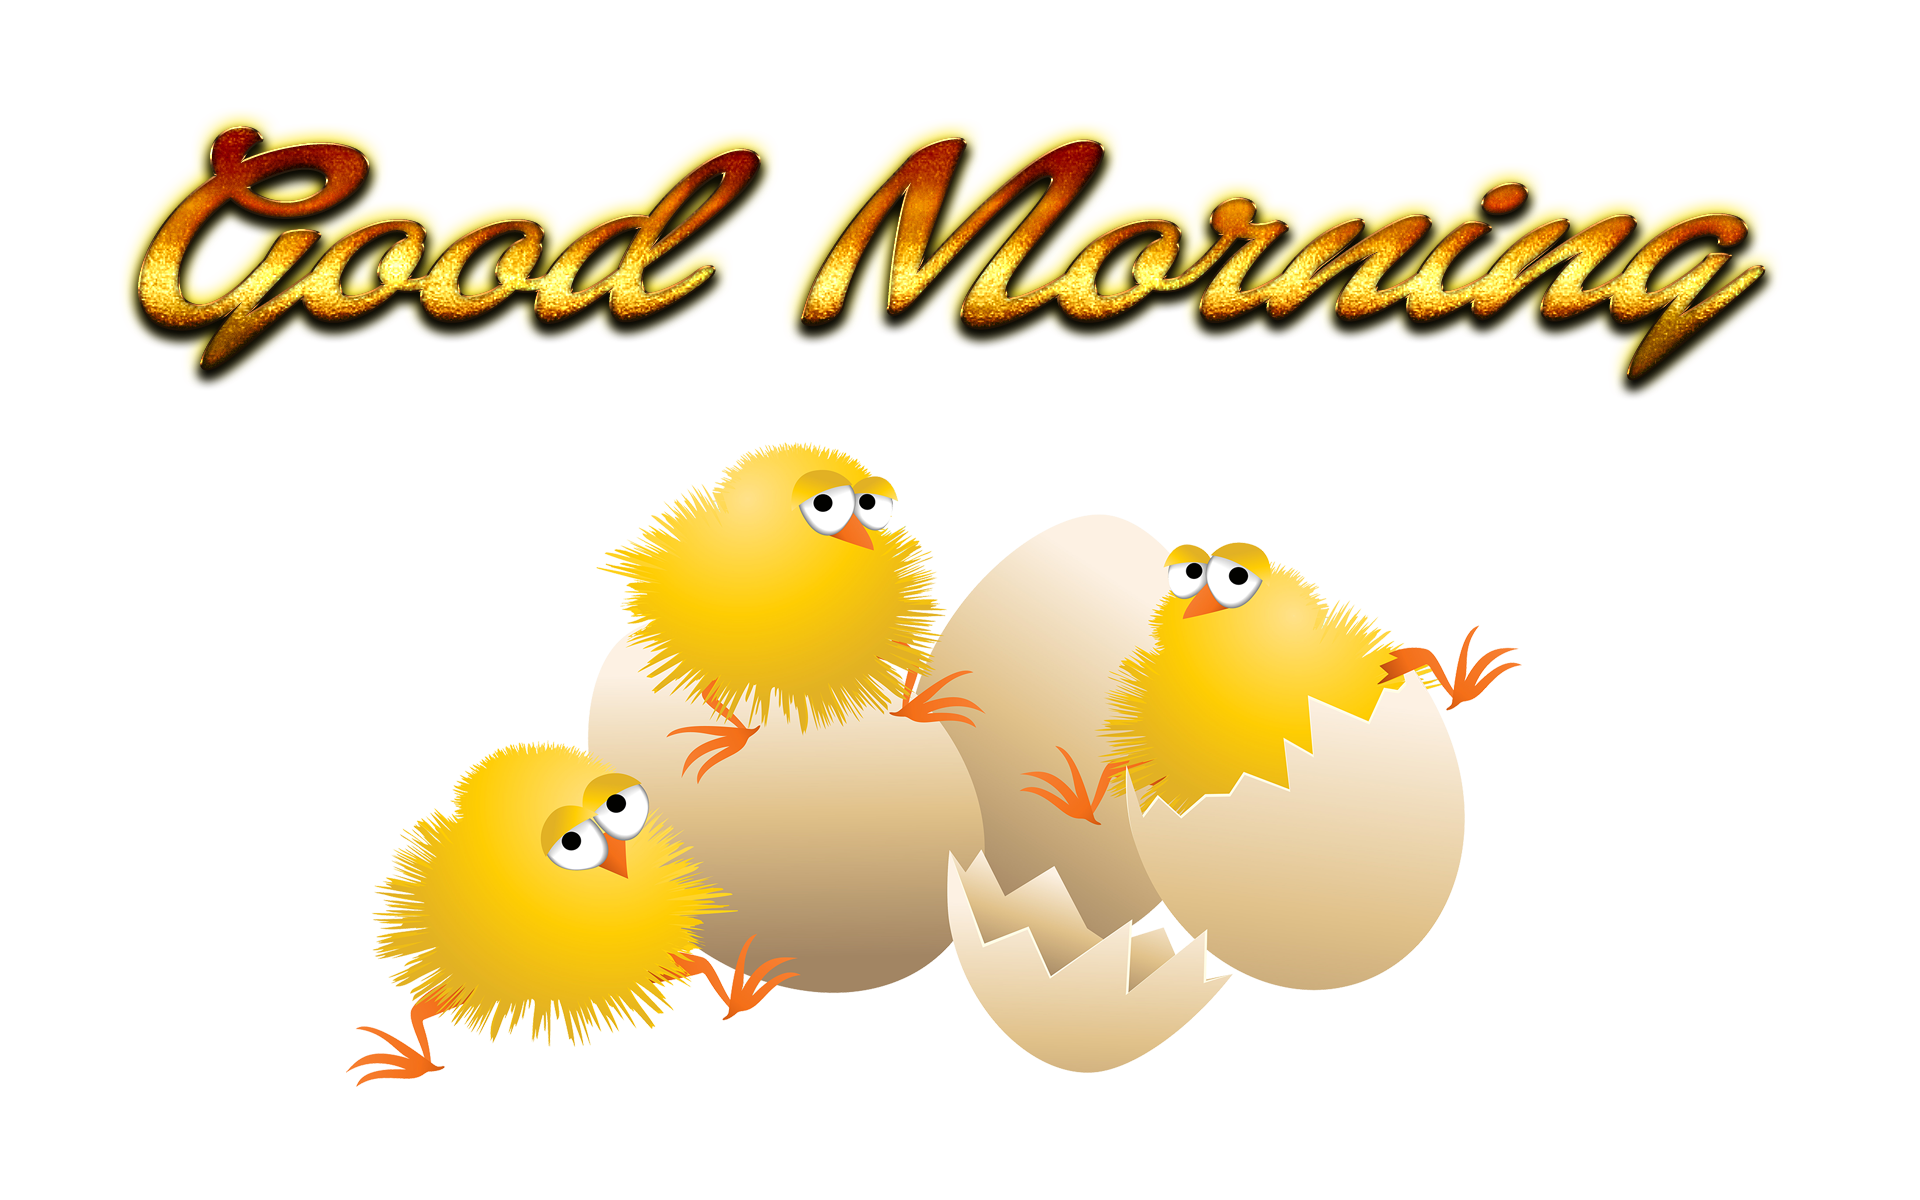 Name png ready made. Wednesday clipart good morning